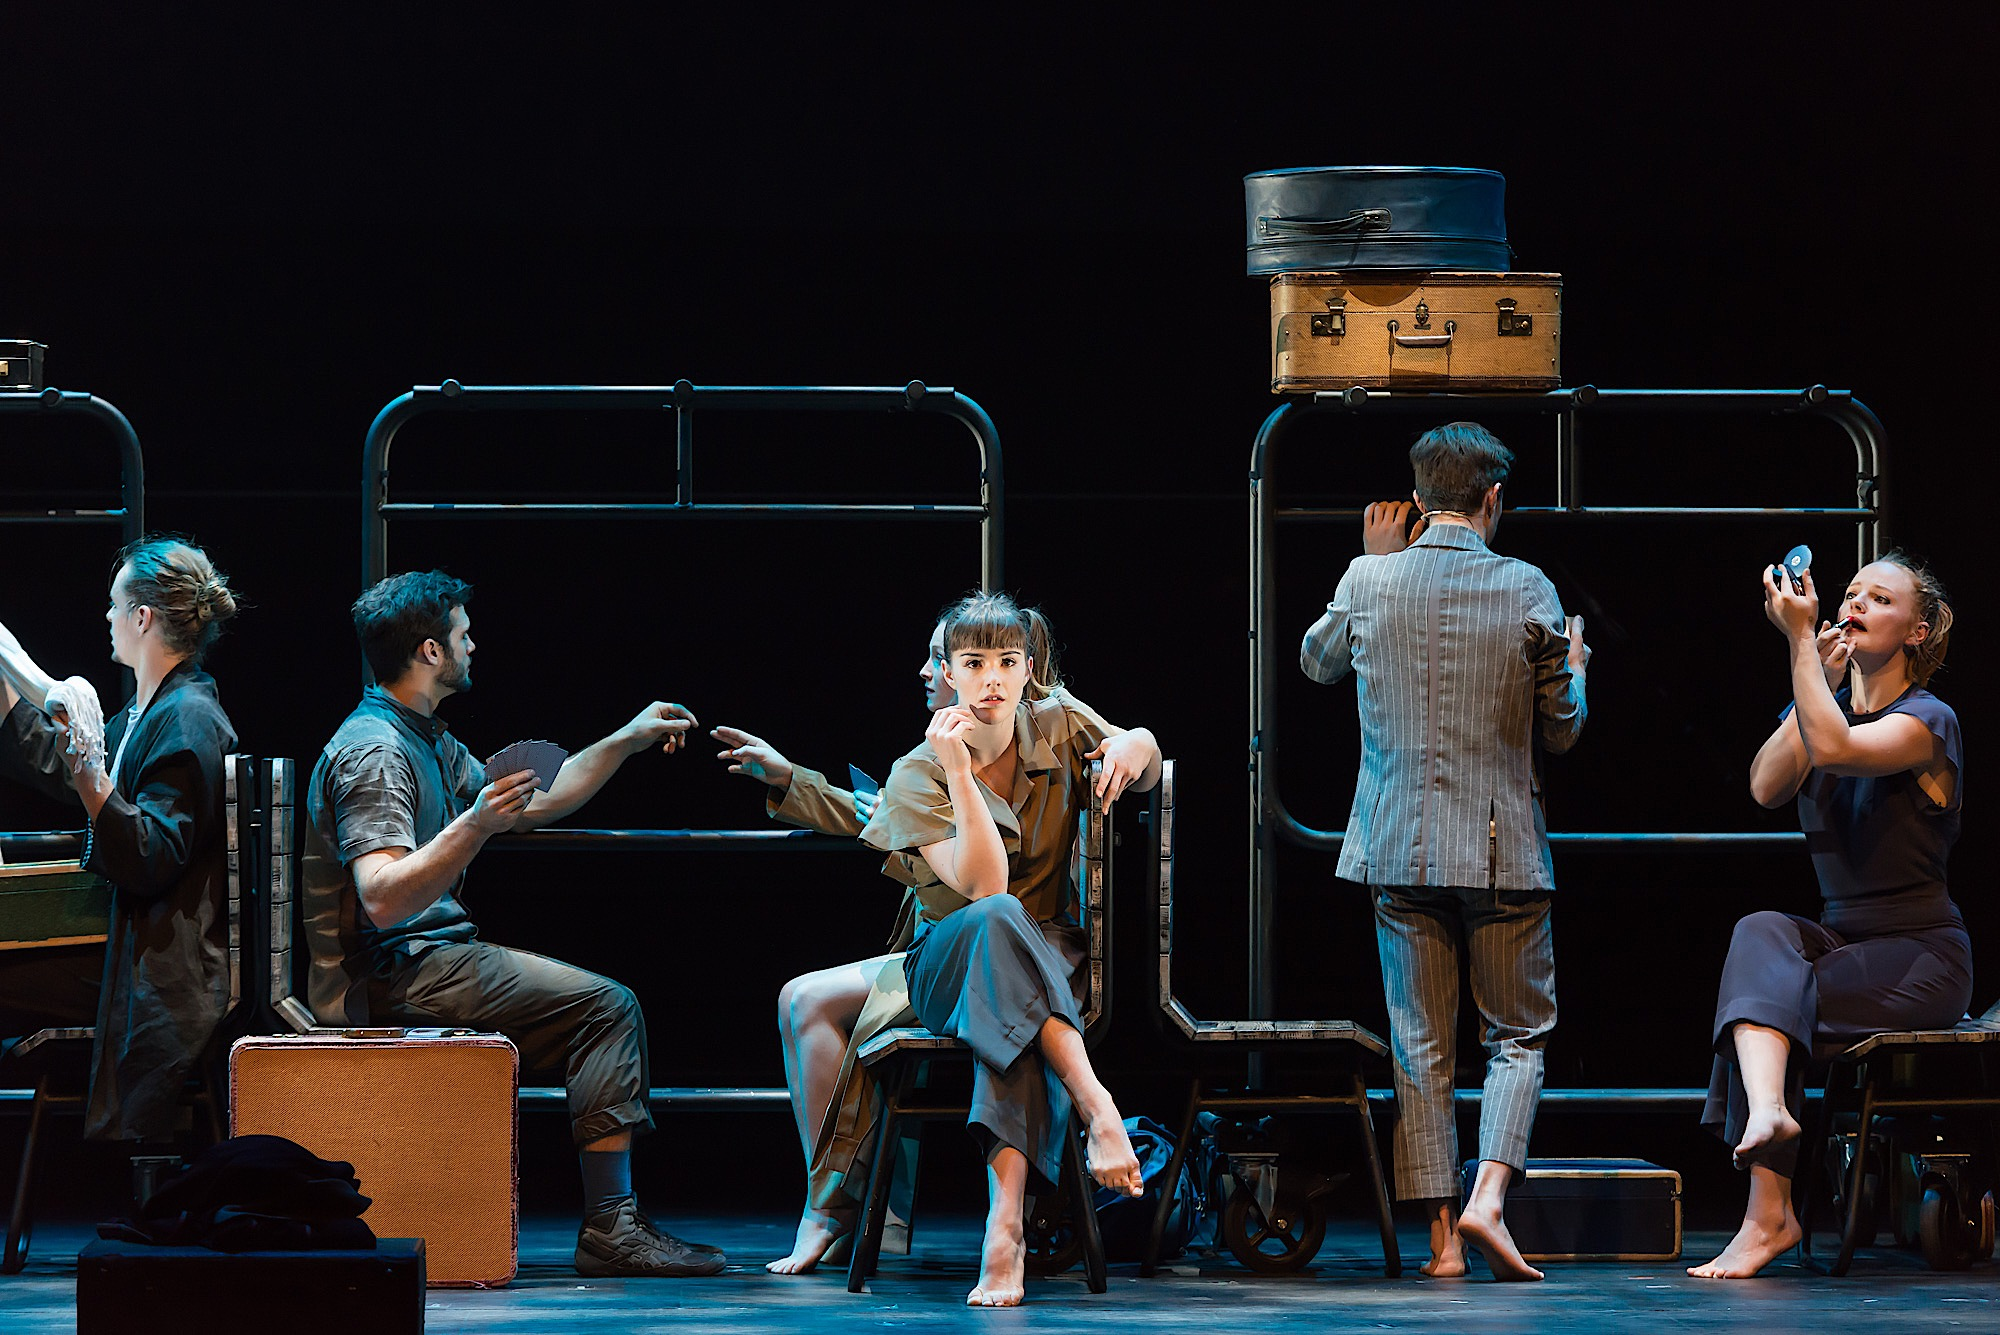 The 7 Fingers performs Passagers. The cast of circus artists use chairs and luggage trollies to recreate a busy train carriage.